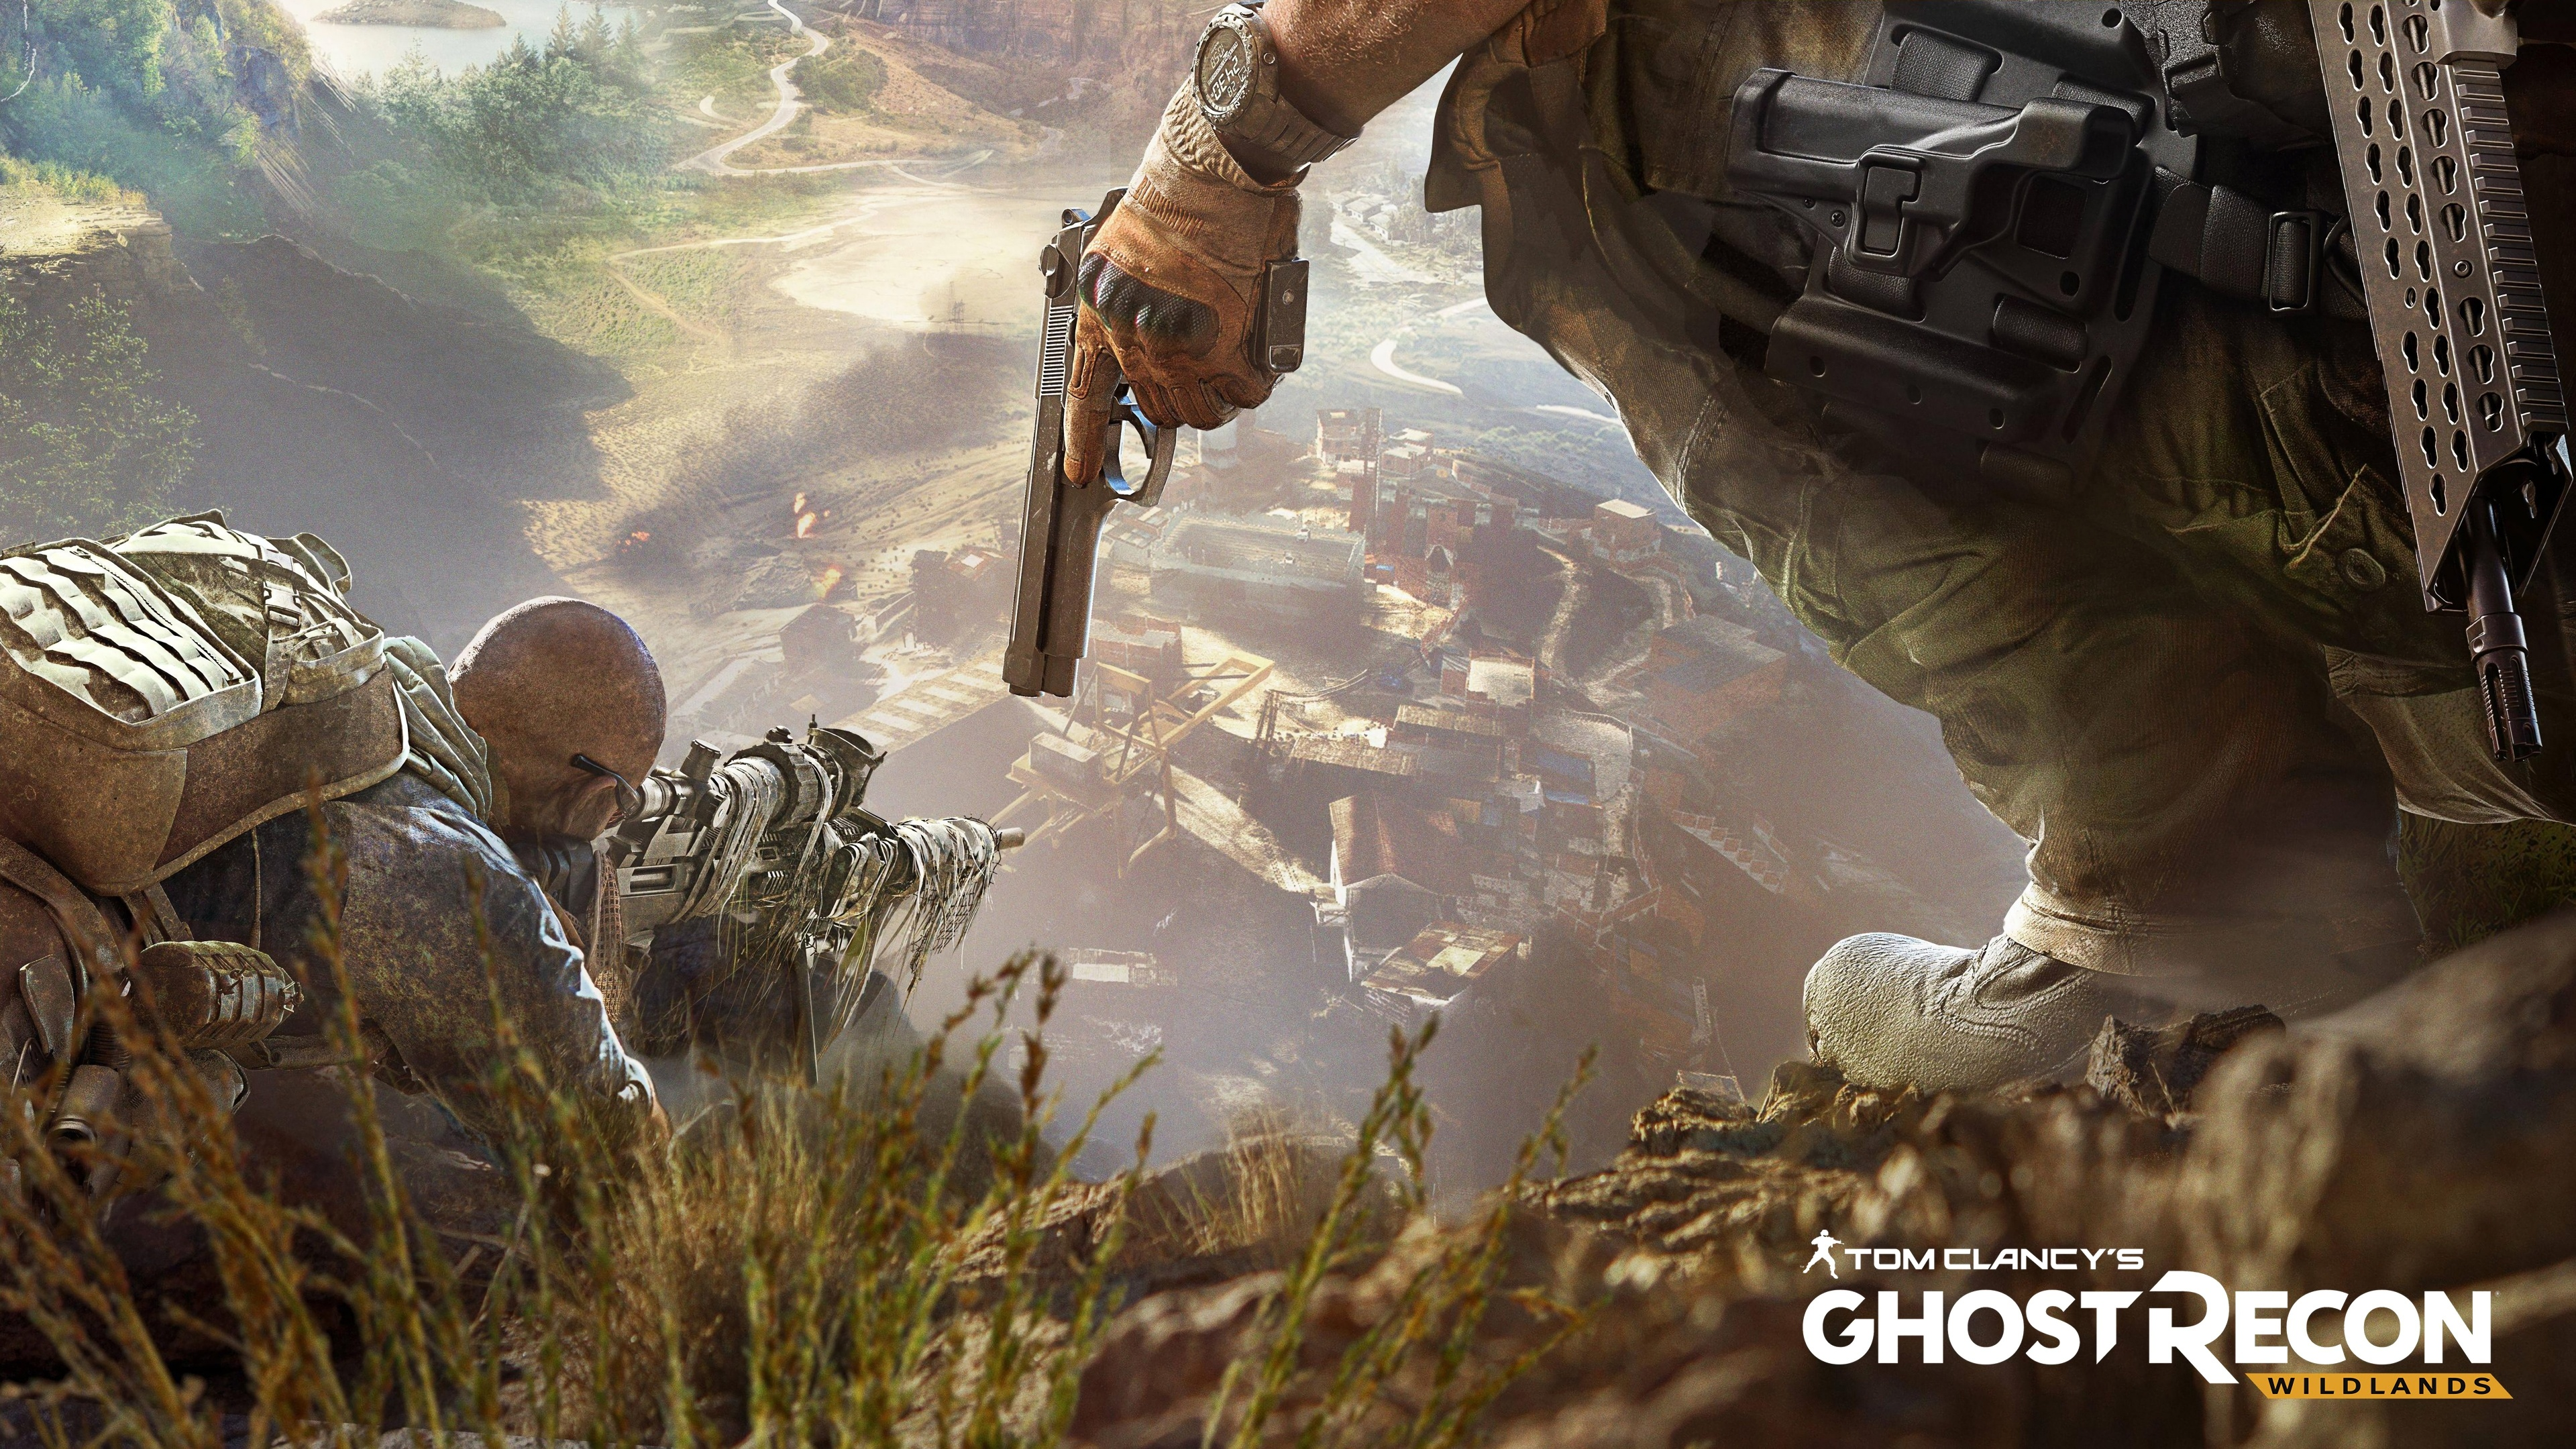 ghost recon pc game free download full version